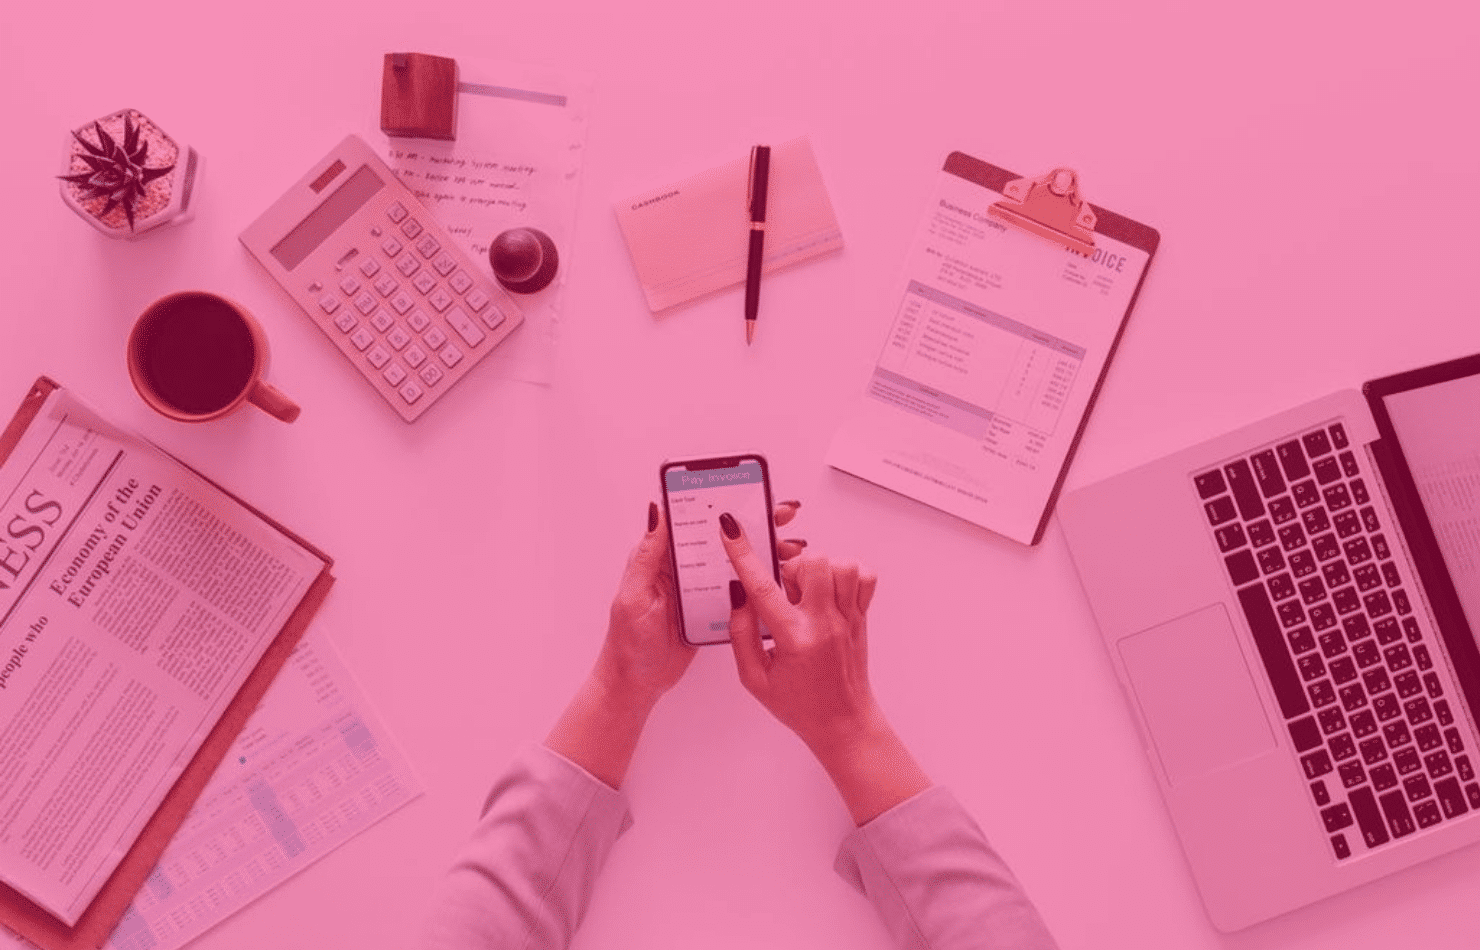 Handy apps for mobile working